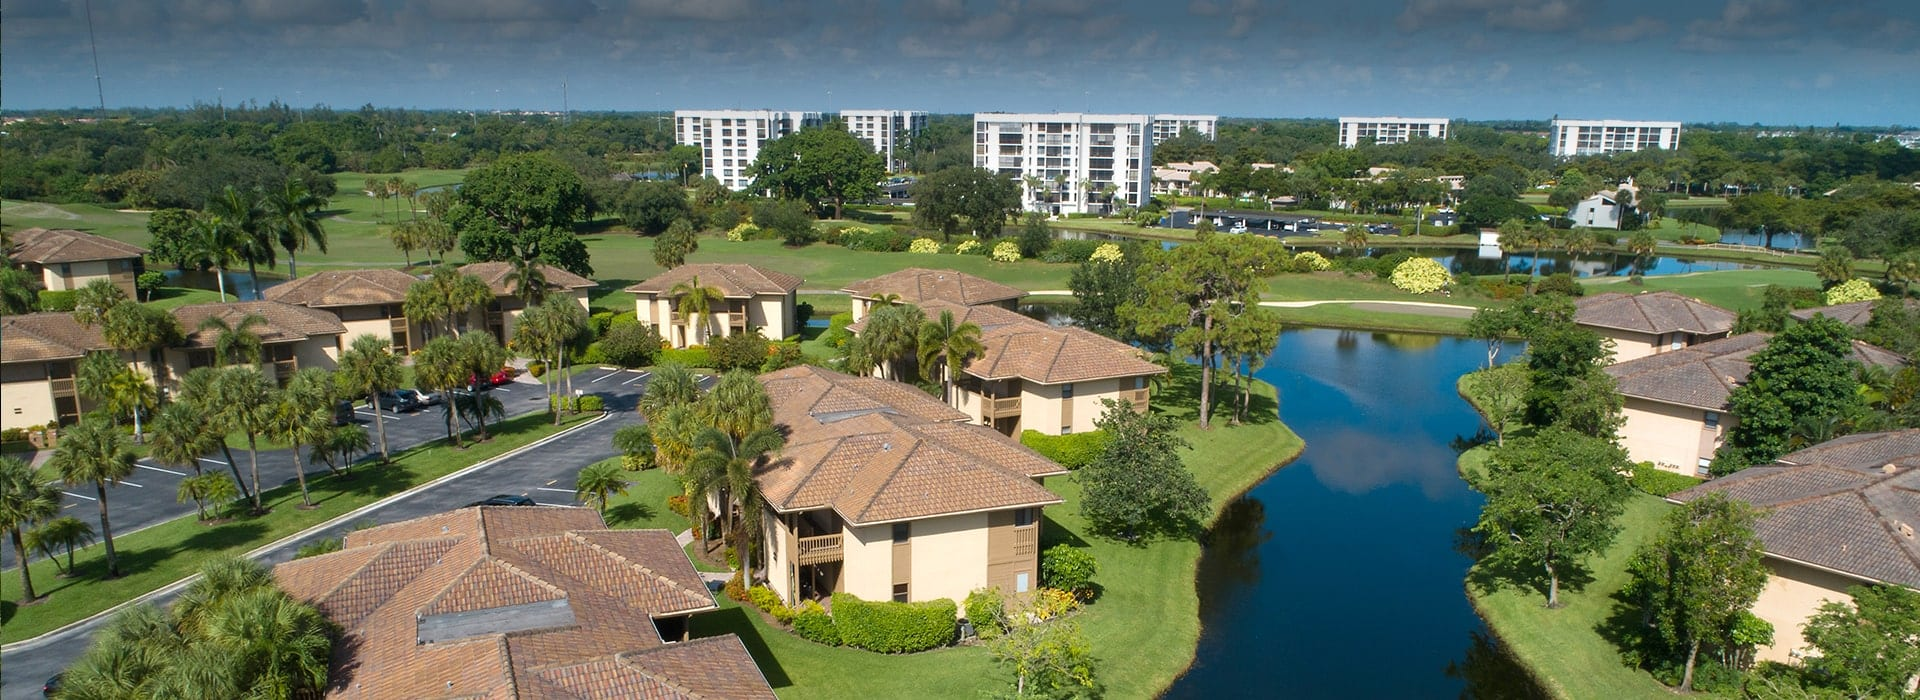 Arbor Lake townhome and villa community featuring lake and golf course views